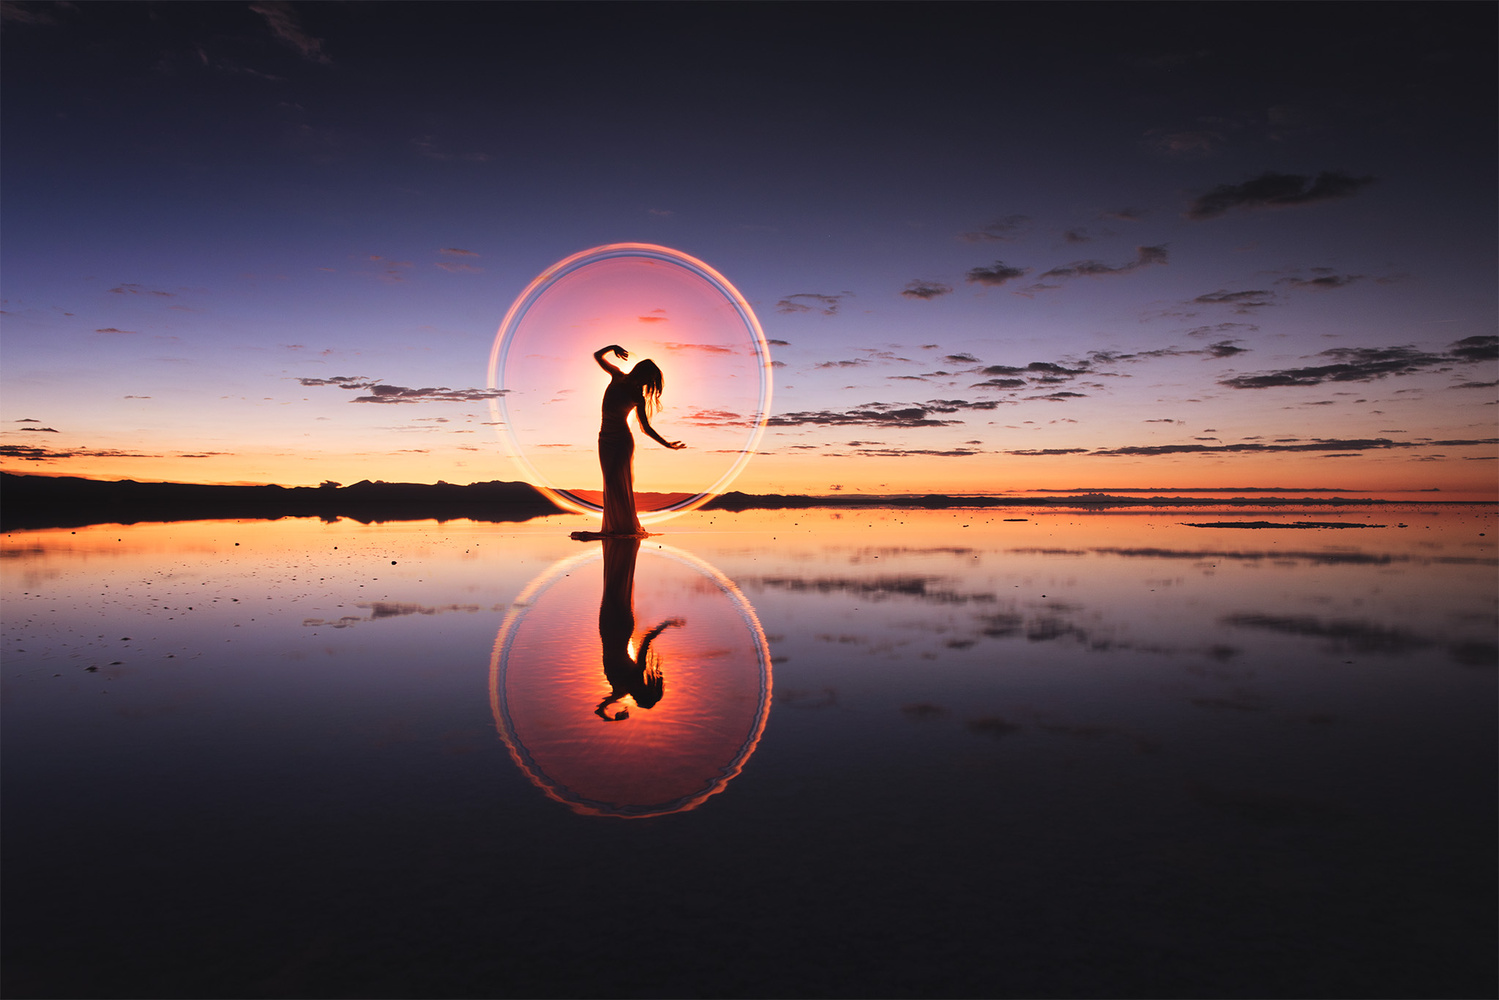 Light-painting in Uyuni by Eric Pare